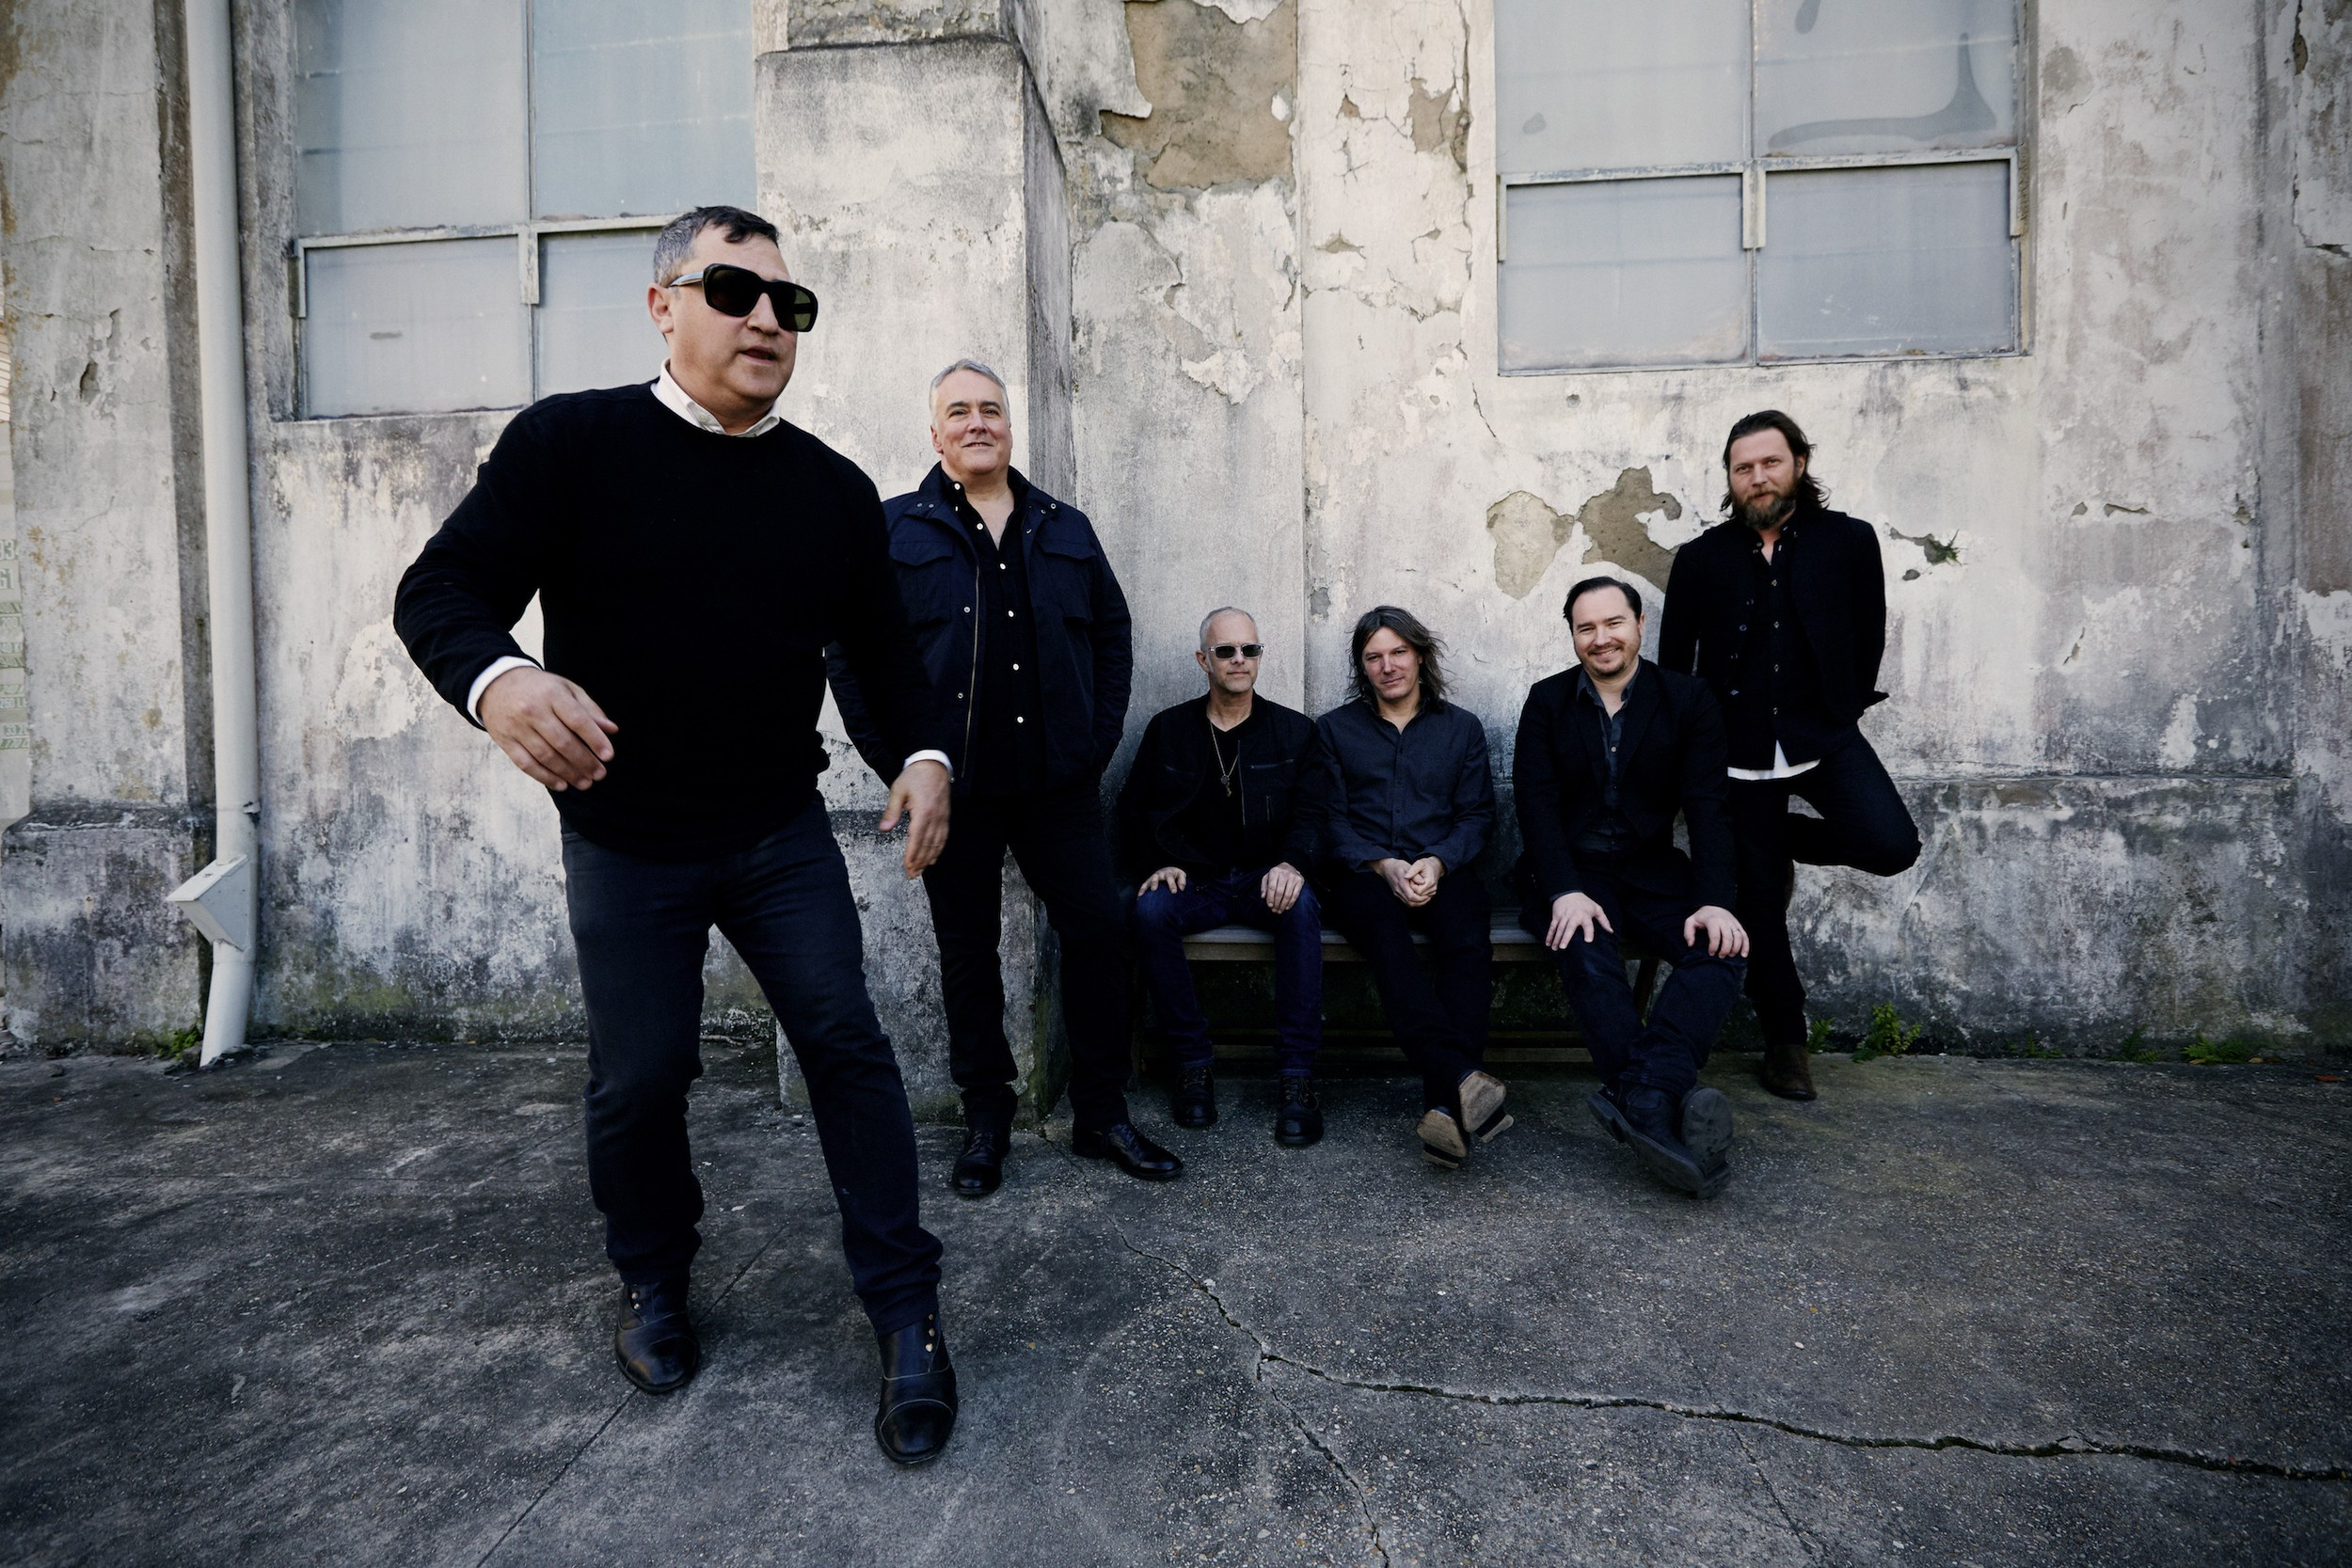 Afghan Whigs' Greg Dulli Talks New Album <i>In Spades</i> and Why He Knew Trump Was Going to Win